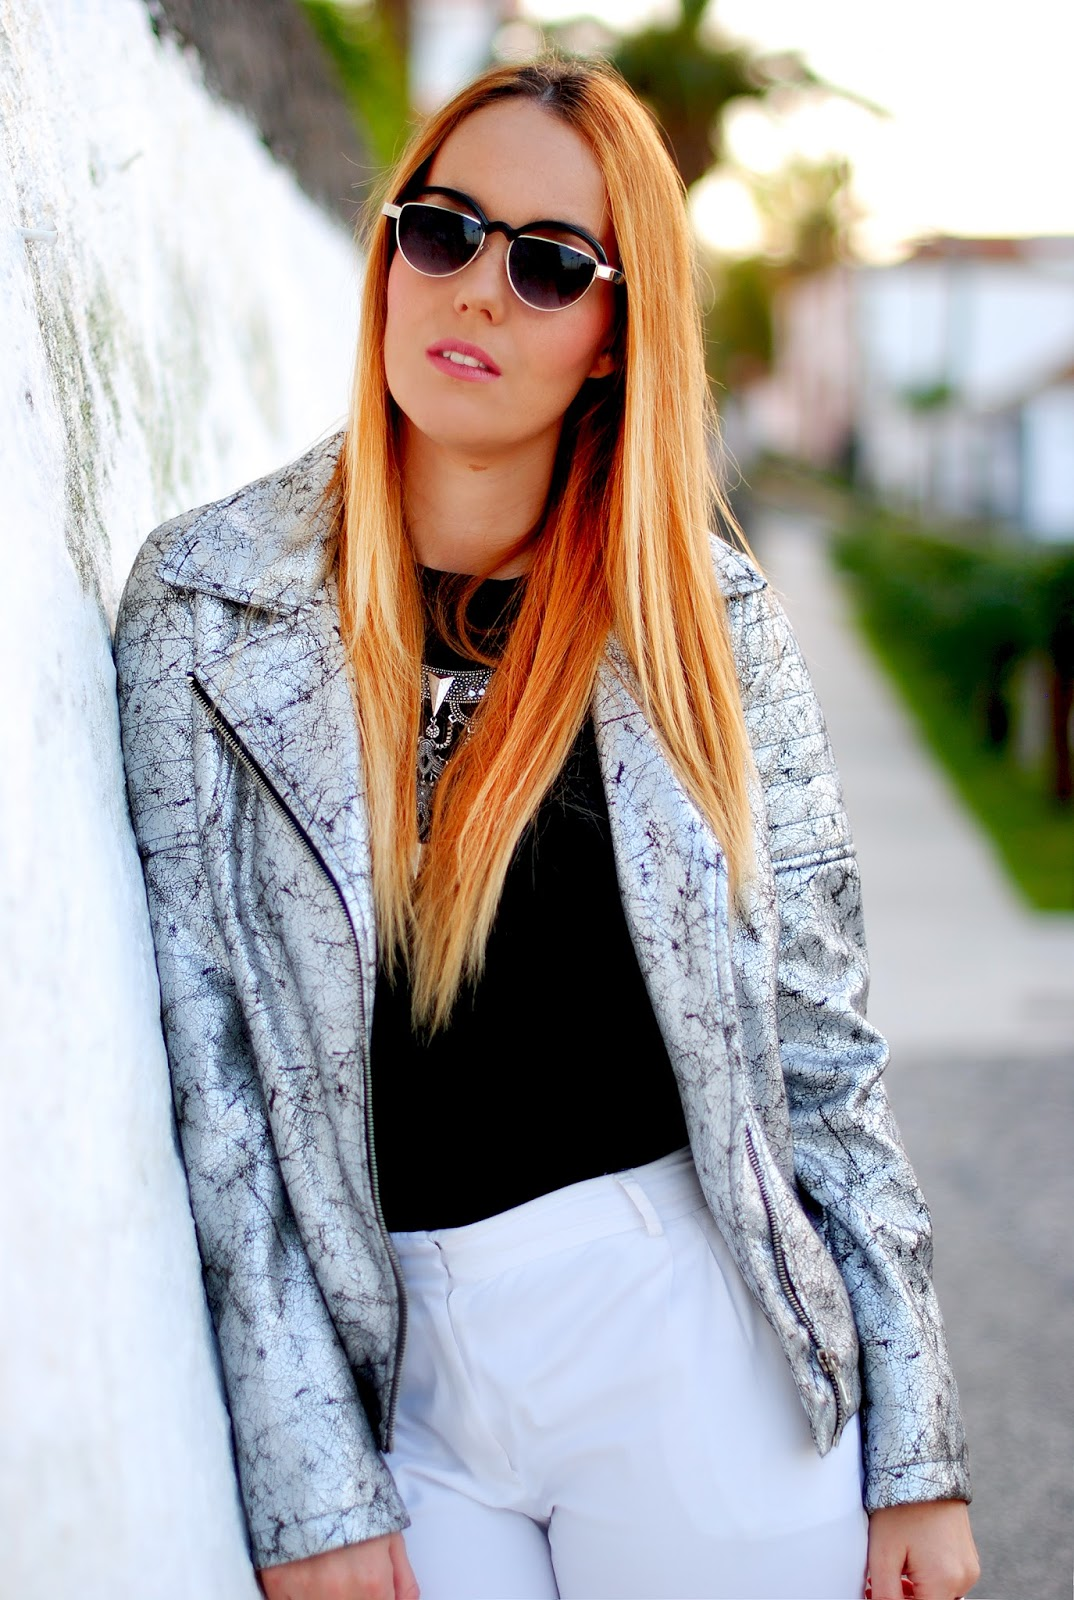 nery hdez, blondedge, freyrs, metallic jackets, cazadora metalizada